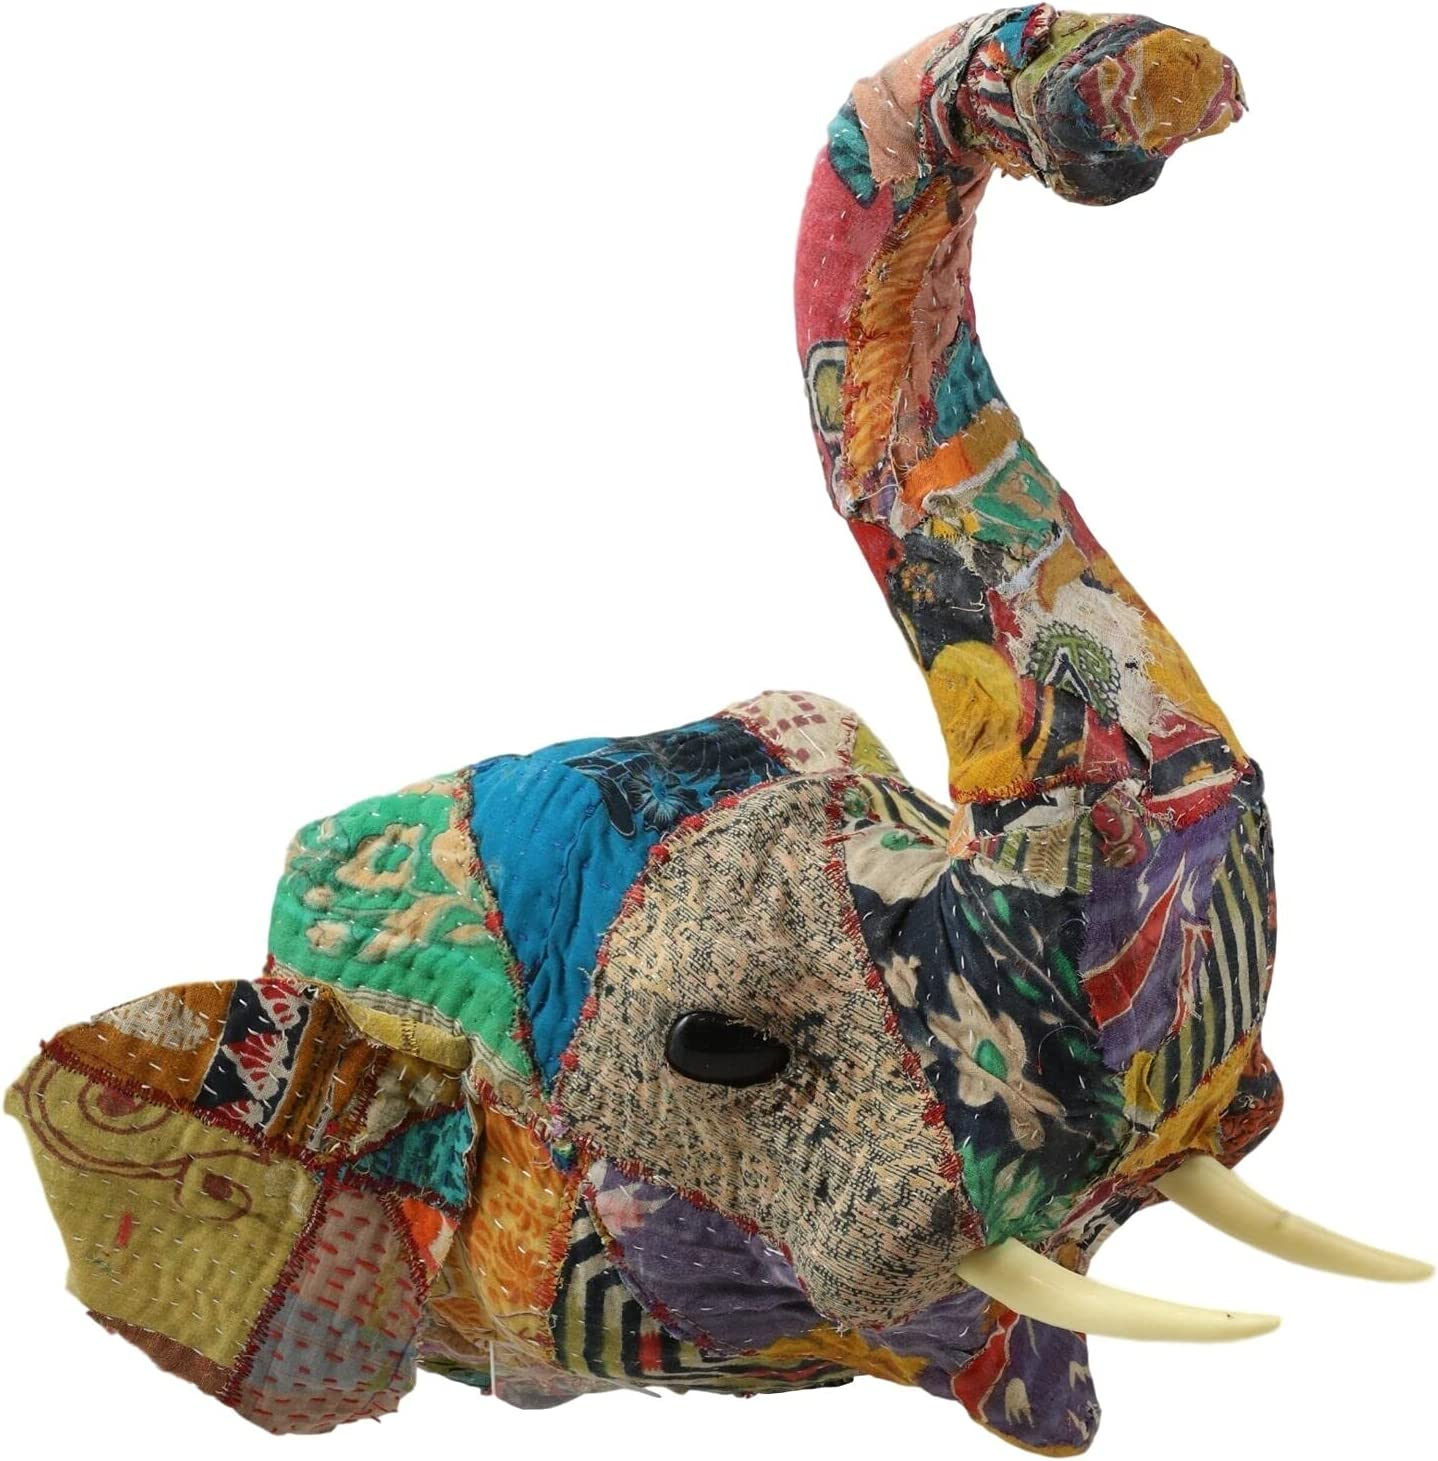 Elephant with Trunk Up Hand Crafted Head Fabric in store De Memphis Mall Sari Mache